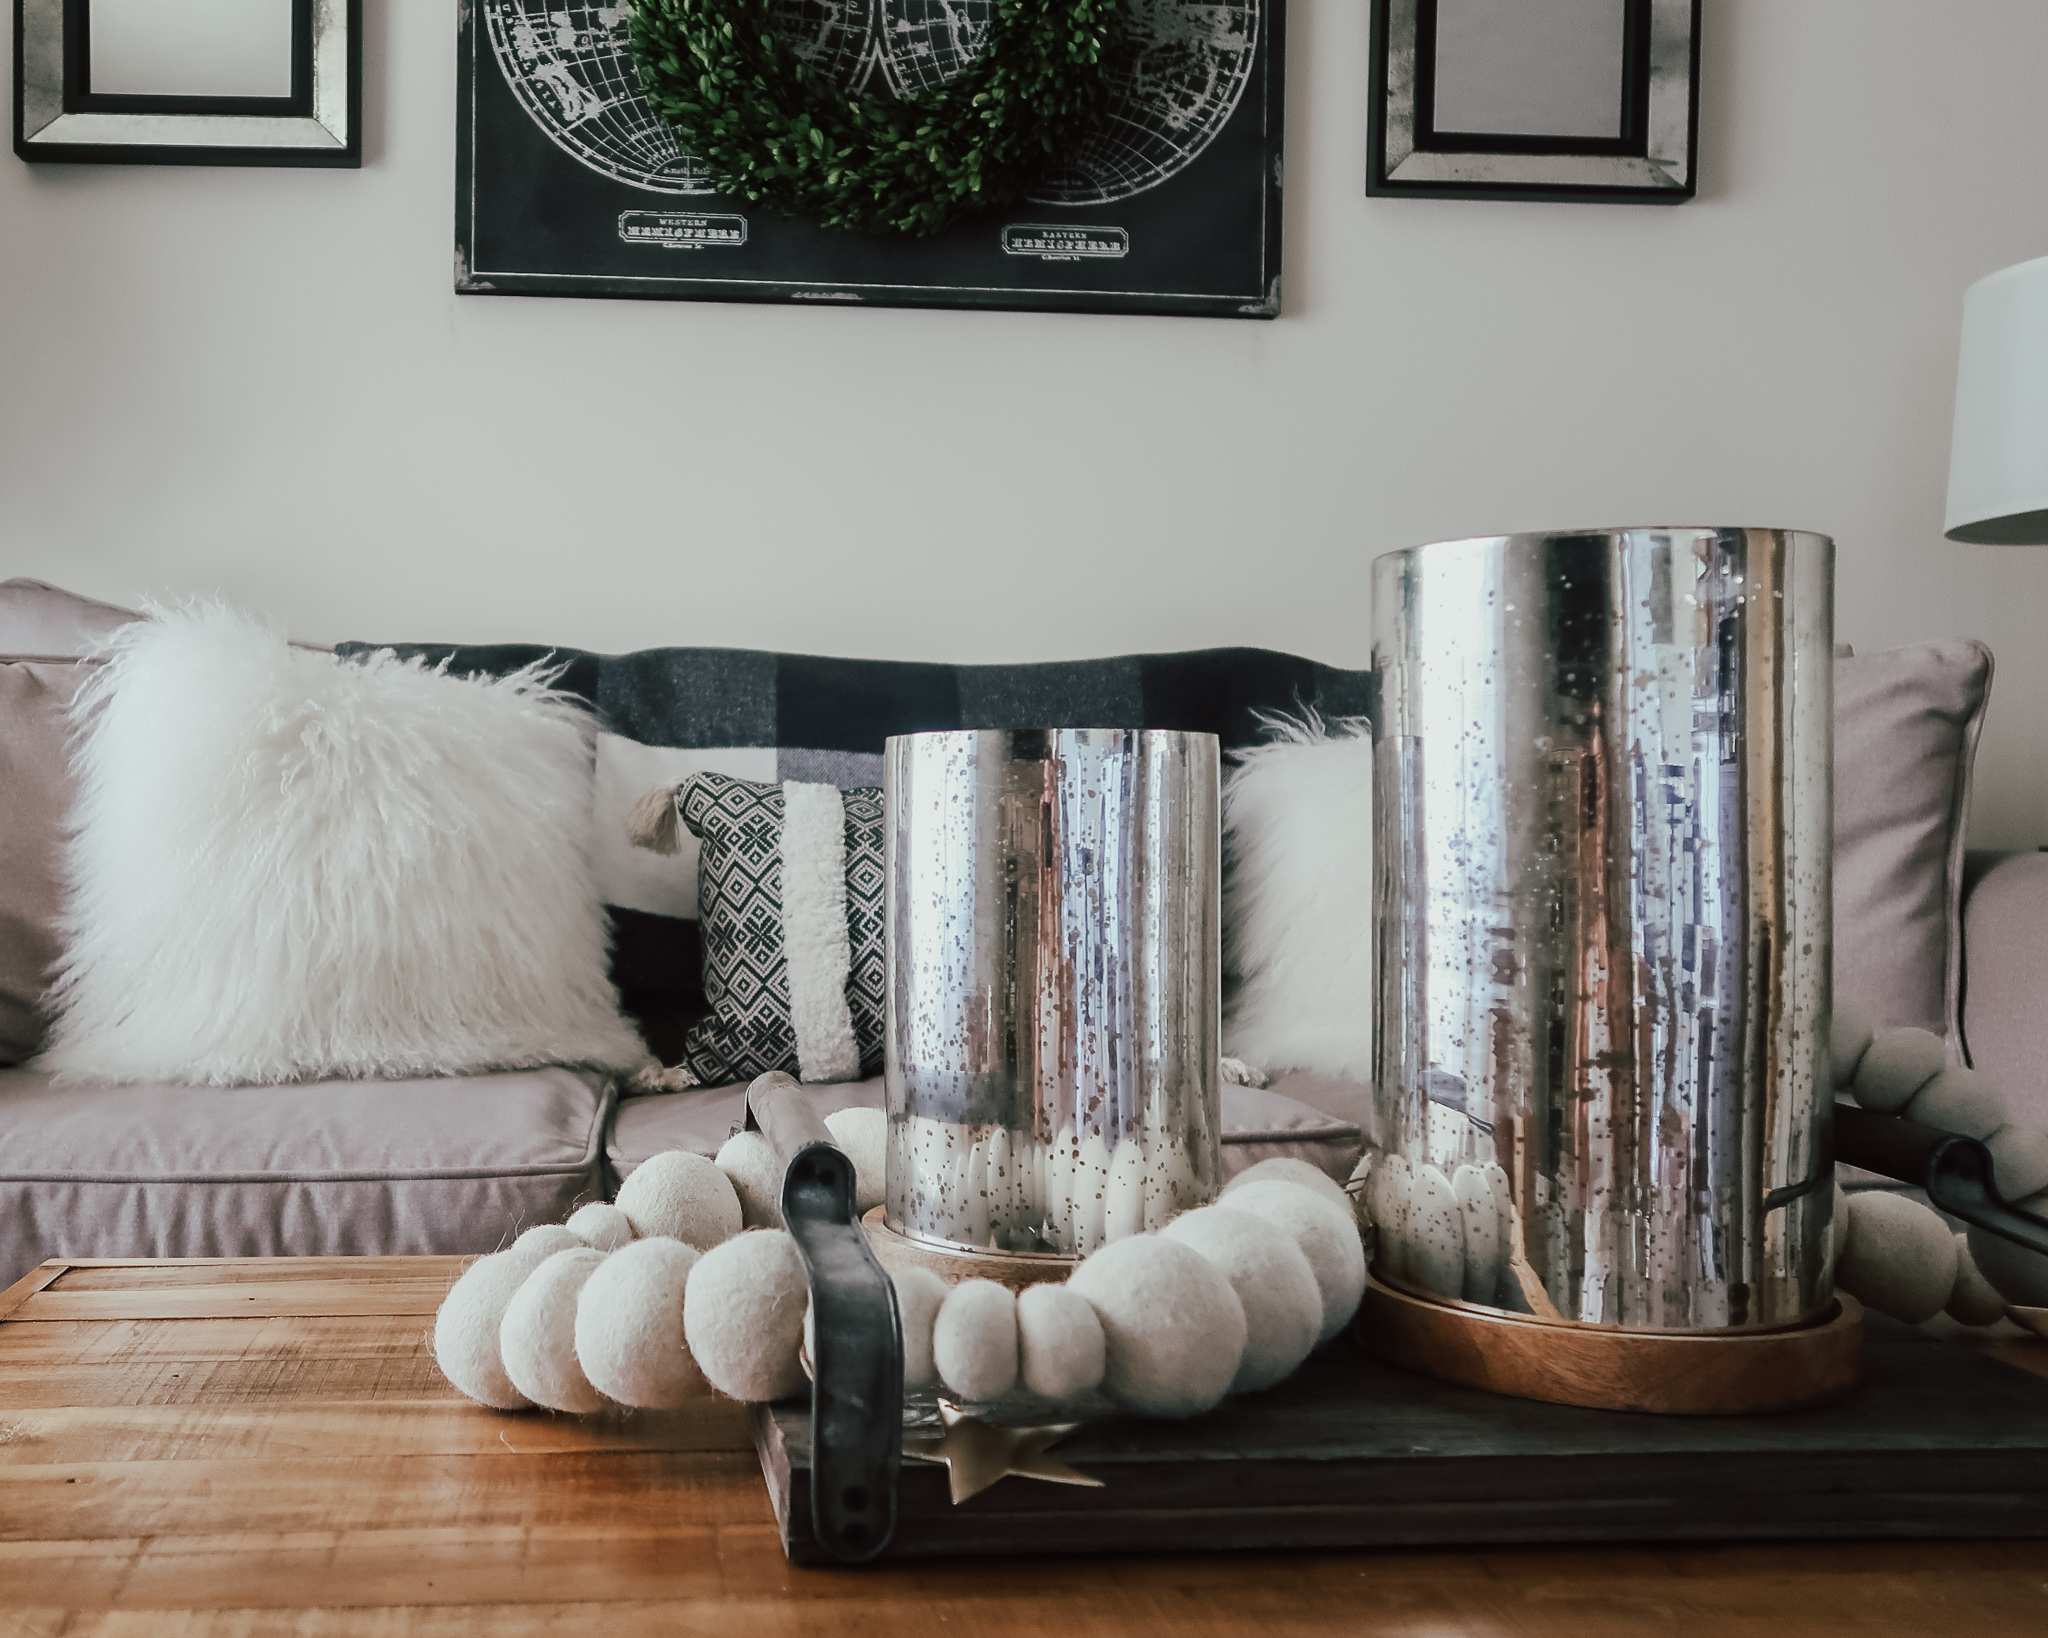 5-ways-to-cozy-your-home-holiday-decor-12jpg